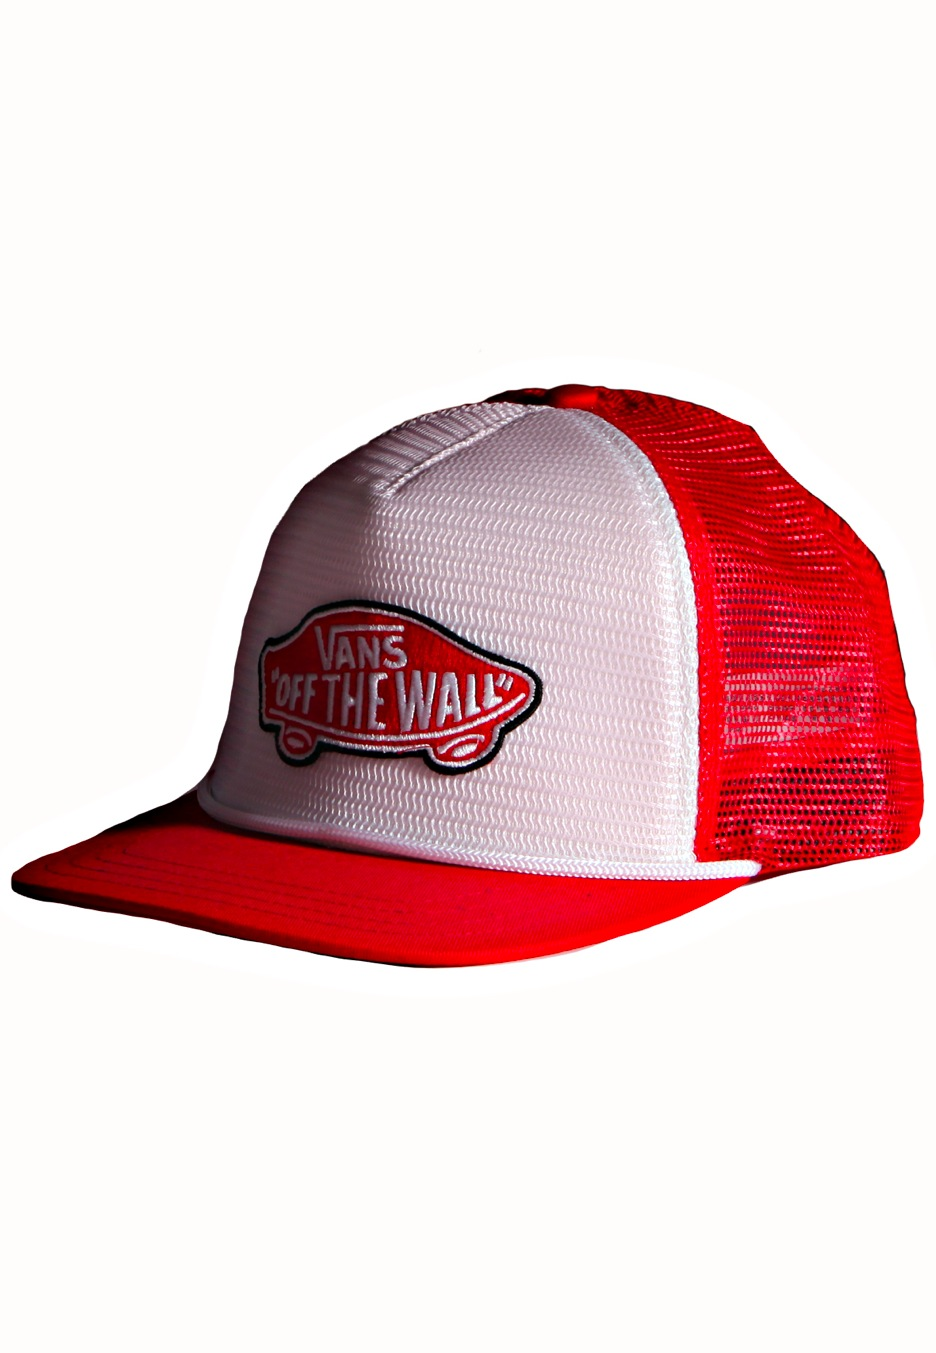 Vans - Classic Patch Brand Red White - Trucker Cap - Impericon.com Worldwide c238f12febc